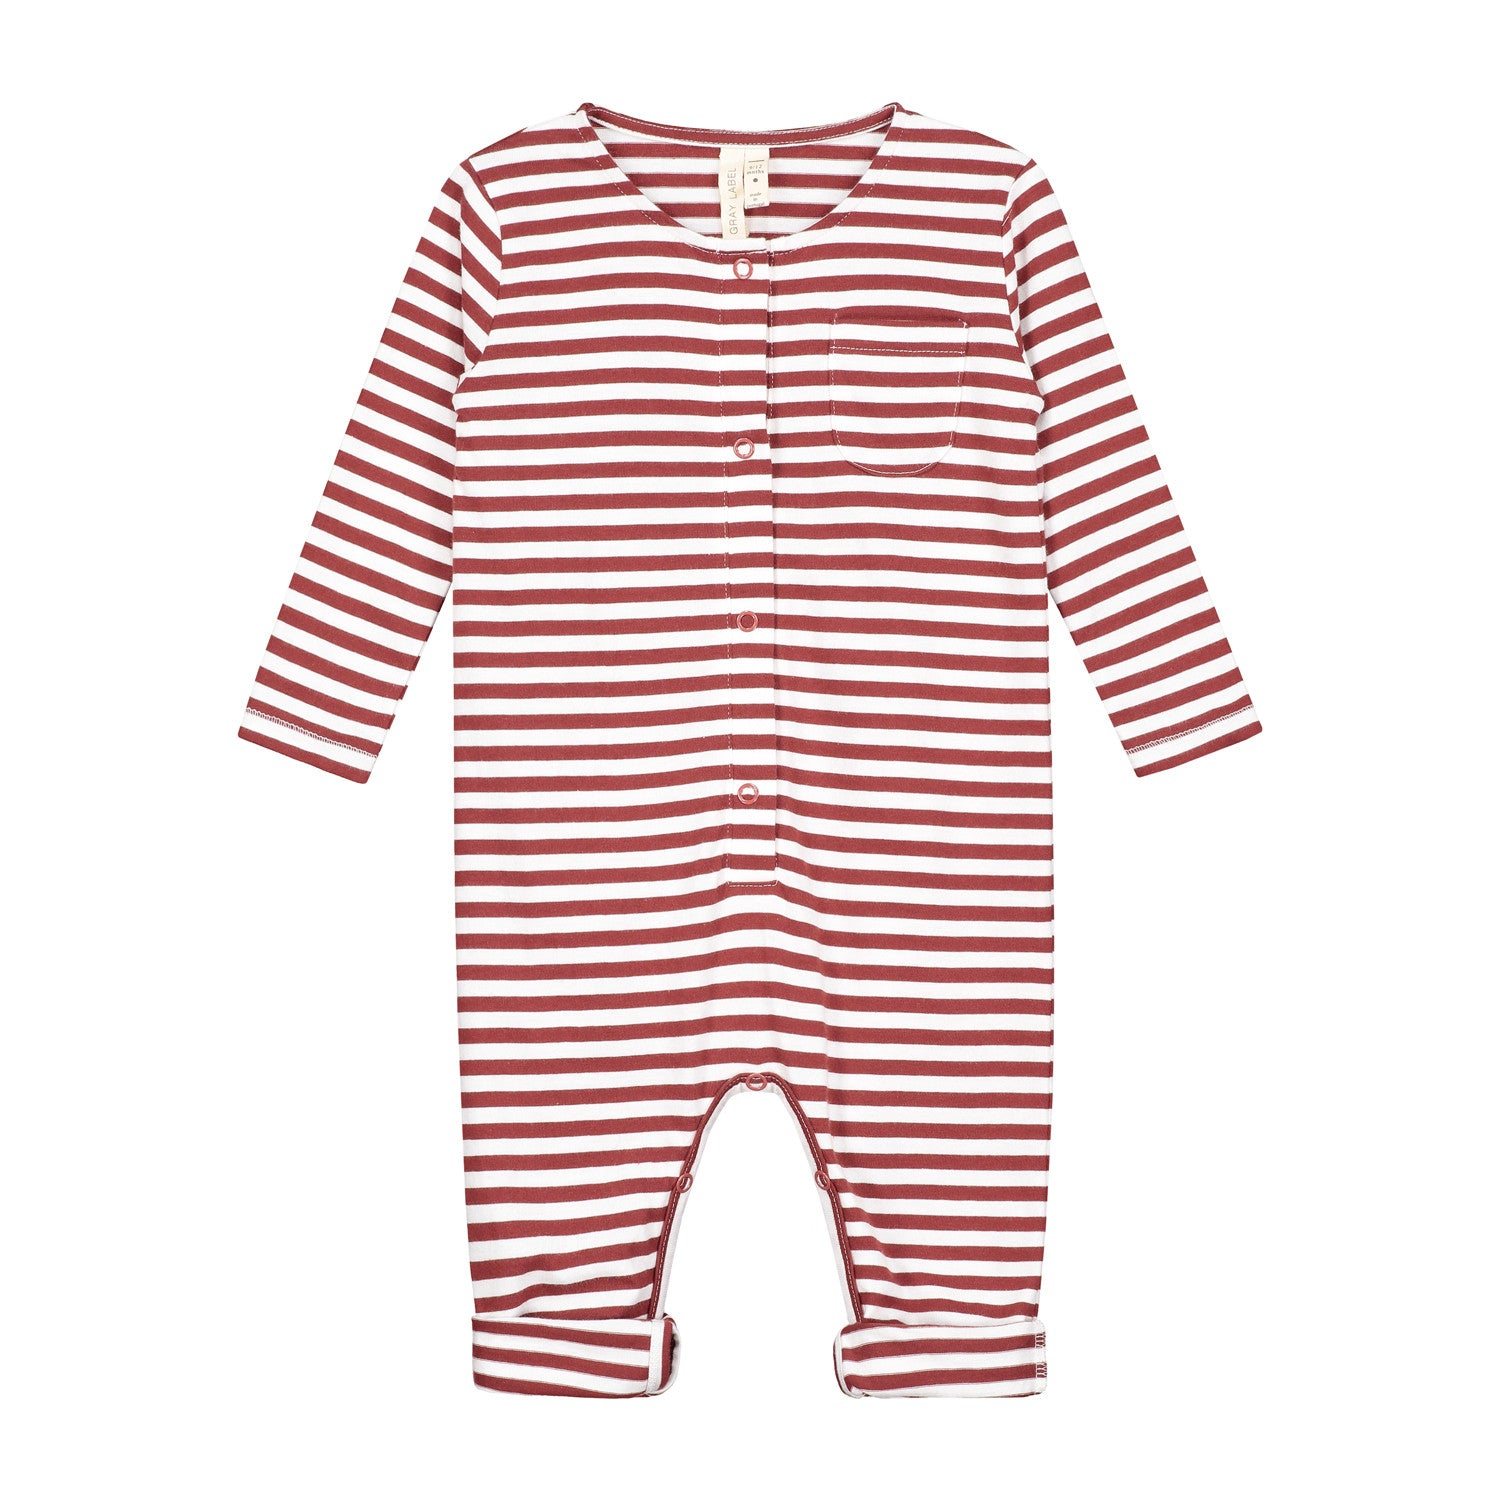 BABY L/S PLAYSUIT IN BURGUNDY/ WHITE STRIPES